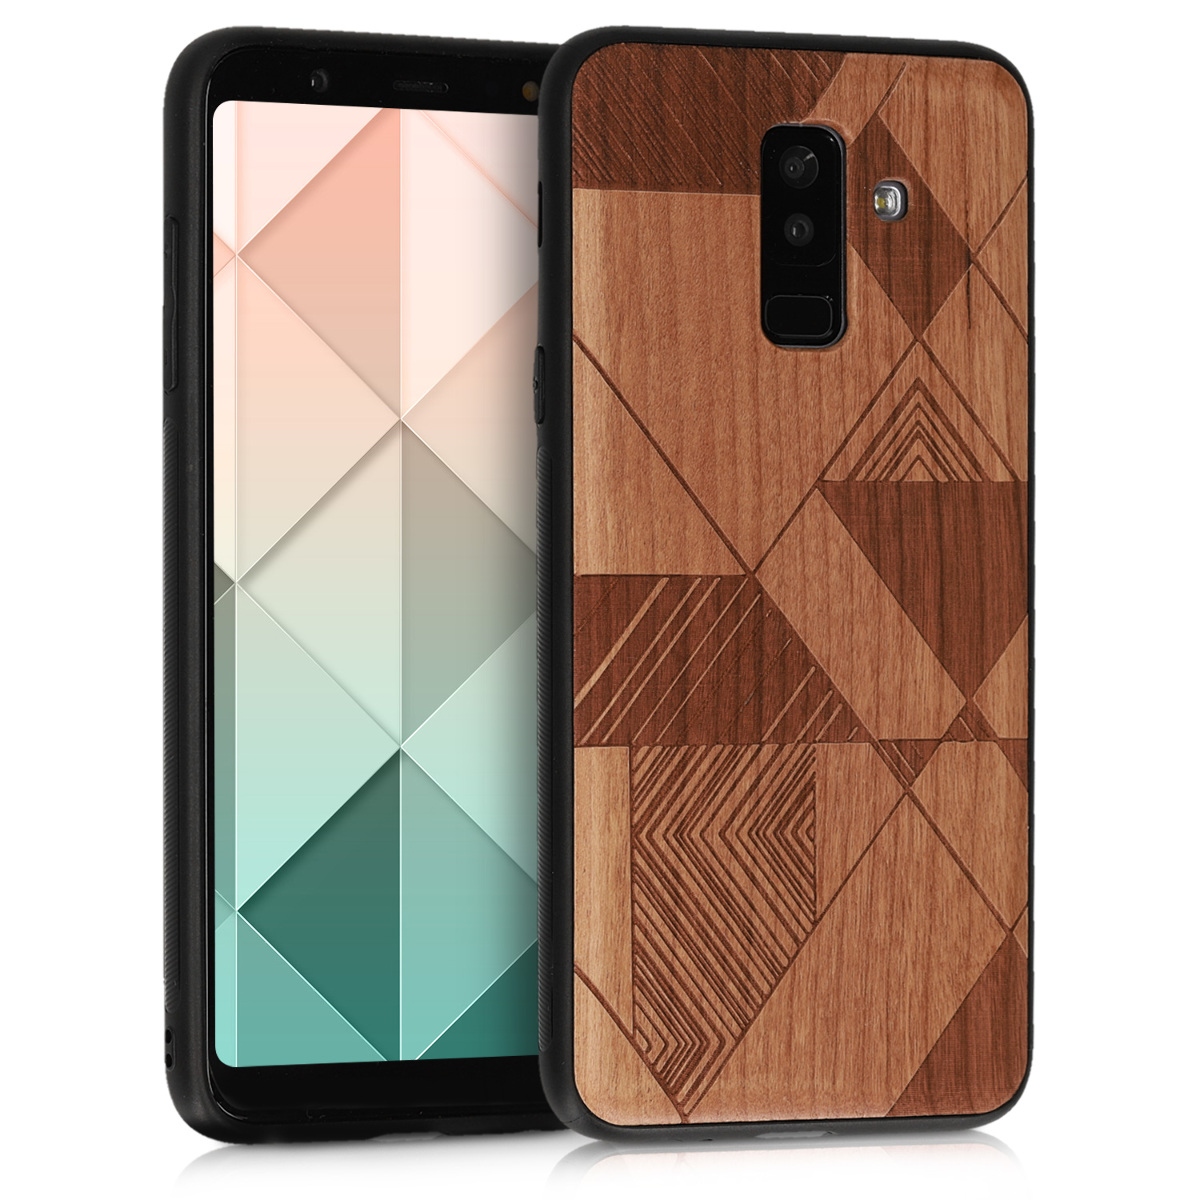 KW Σκληρή Ξύλινη Θήκη - Samsung Galaxy A6+/A6 Plus (2018) - Triangle Lines cherrywood - (47130.01)